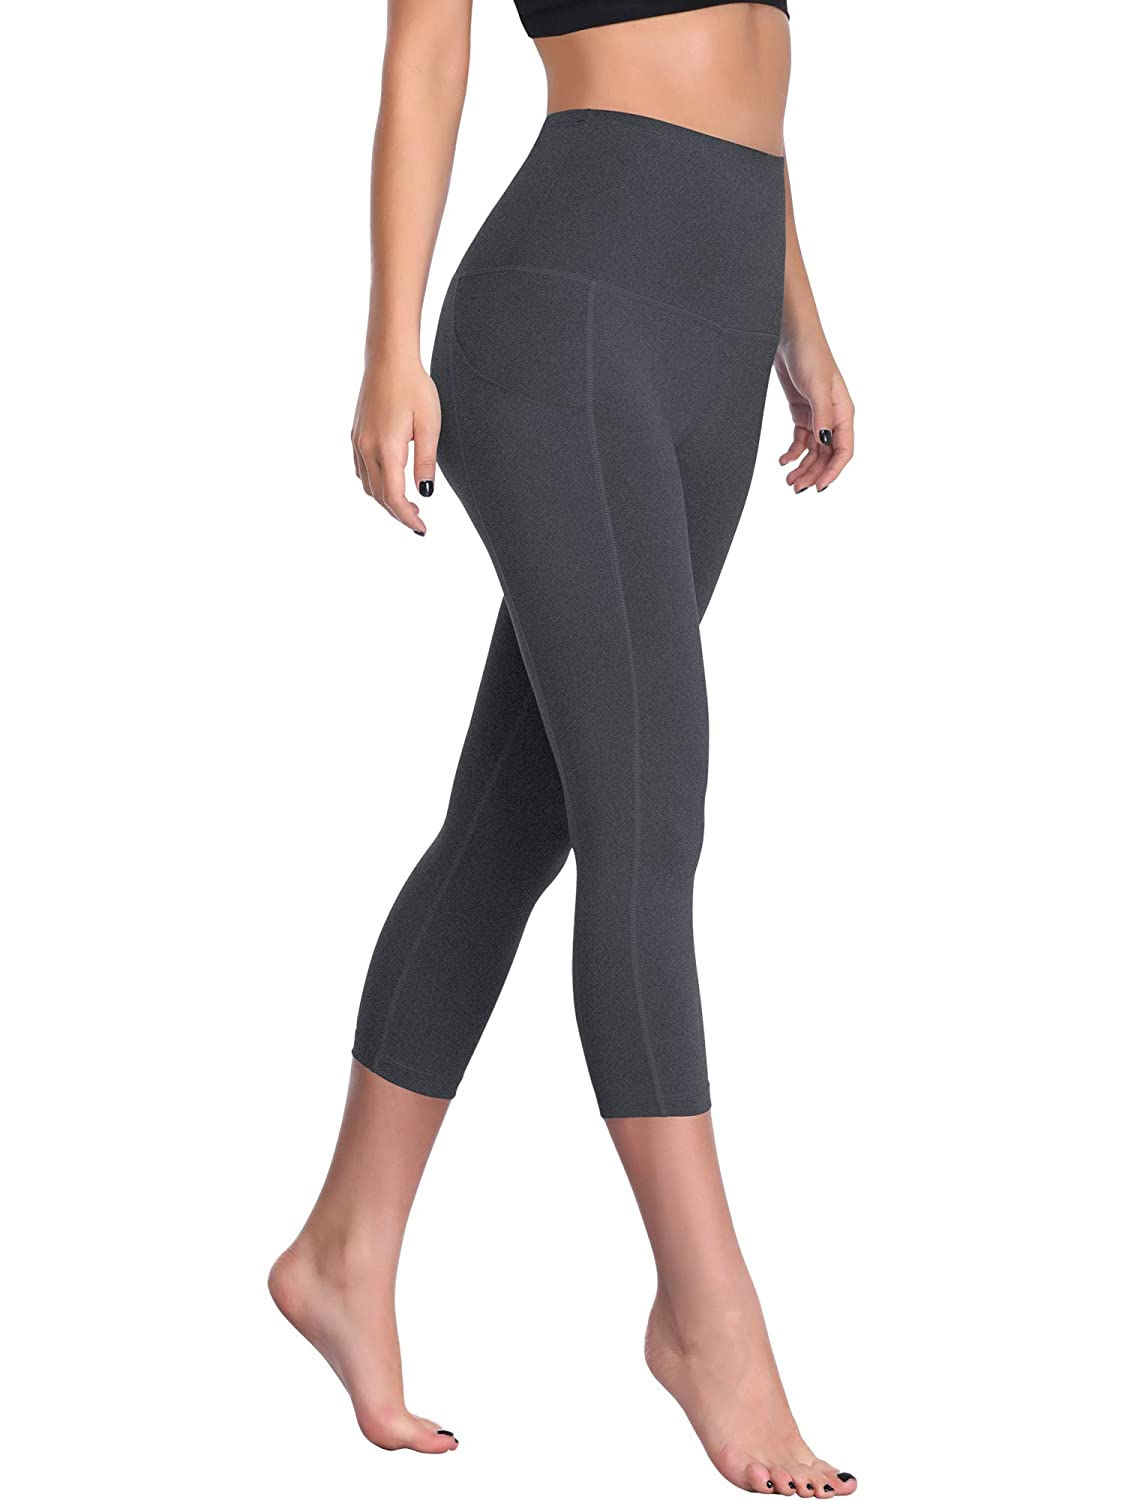 Cadmus Womens Leggings Capris High-Waist Yoga Pants w Side Pockets